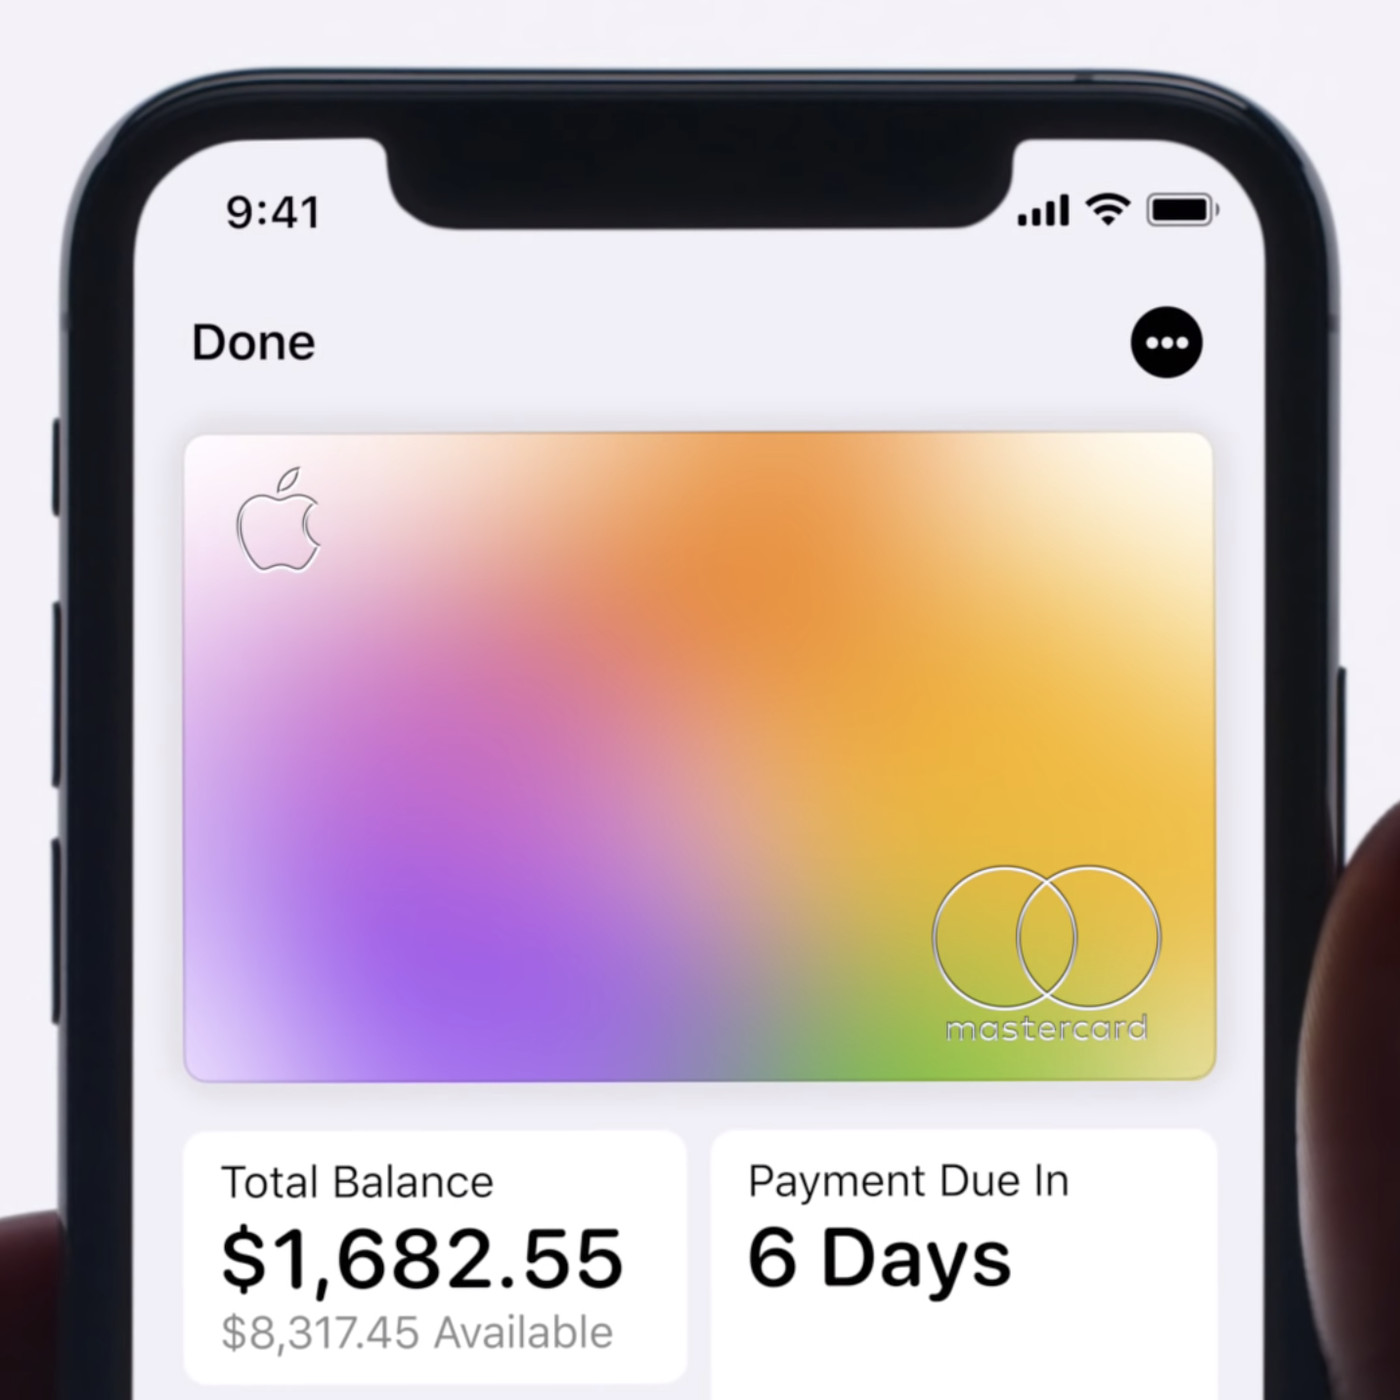 Apple Continues To Sweeten The Deal For Apple Card Owners